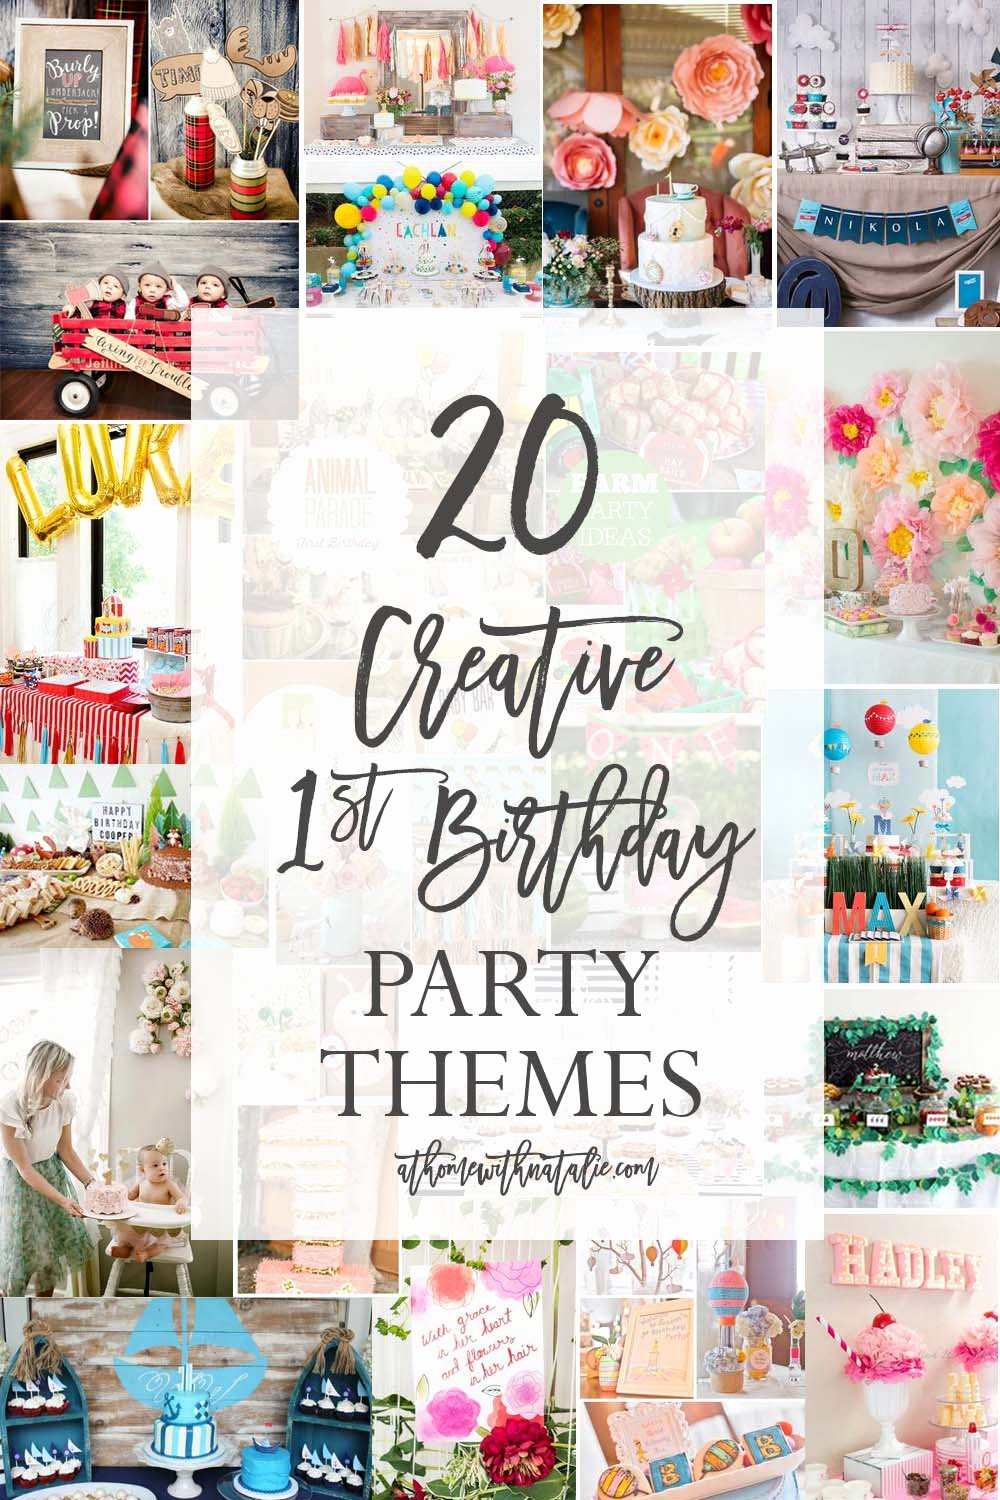 Innovative Birthday Decoration Ideas Inspirational 20 Creative First Birthday Party themes – at Home with Natalie